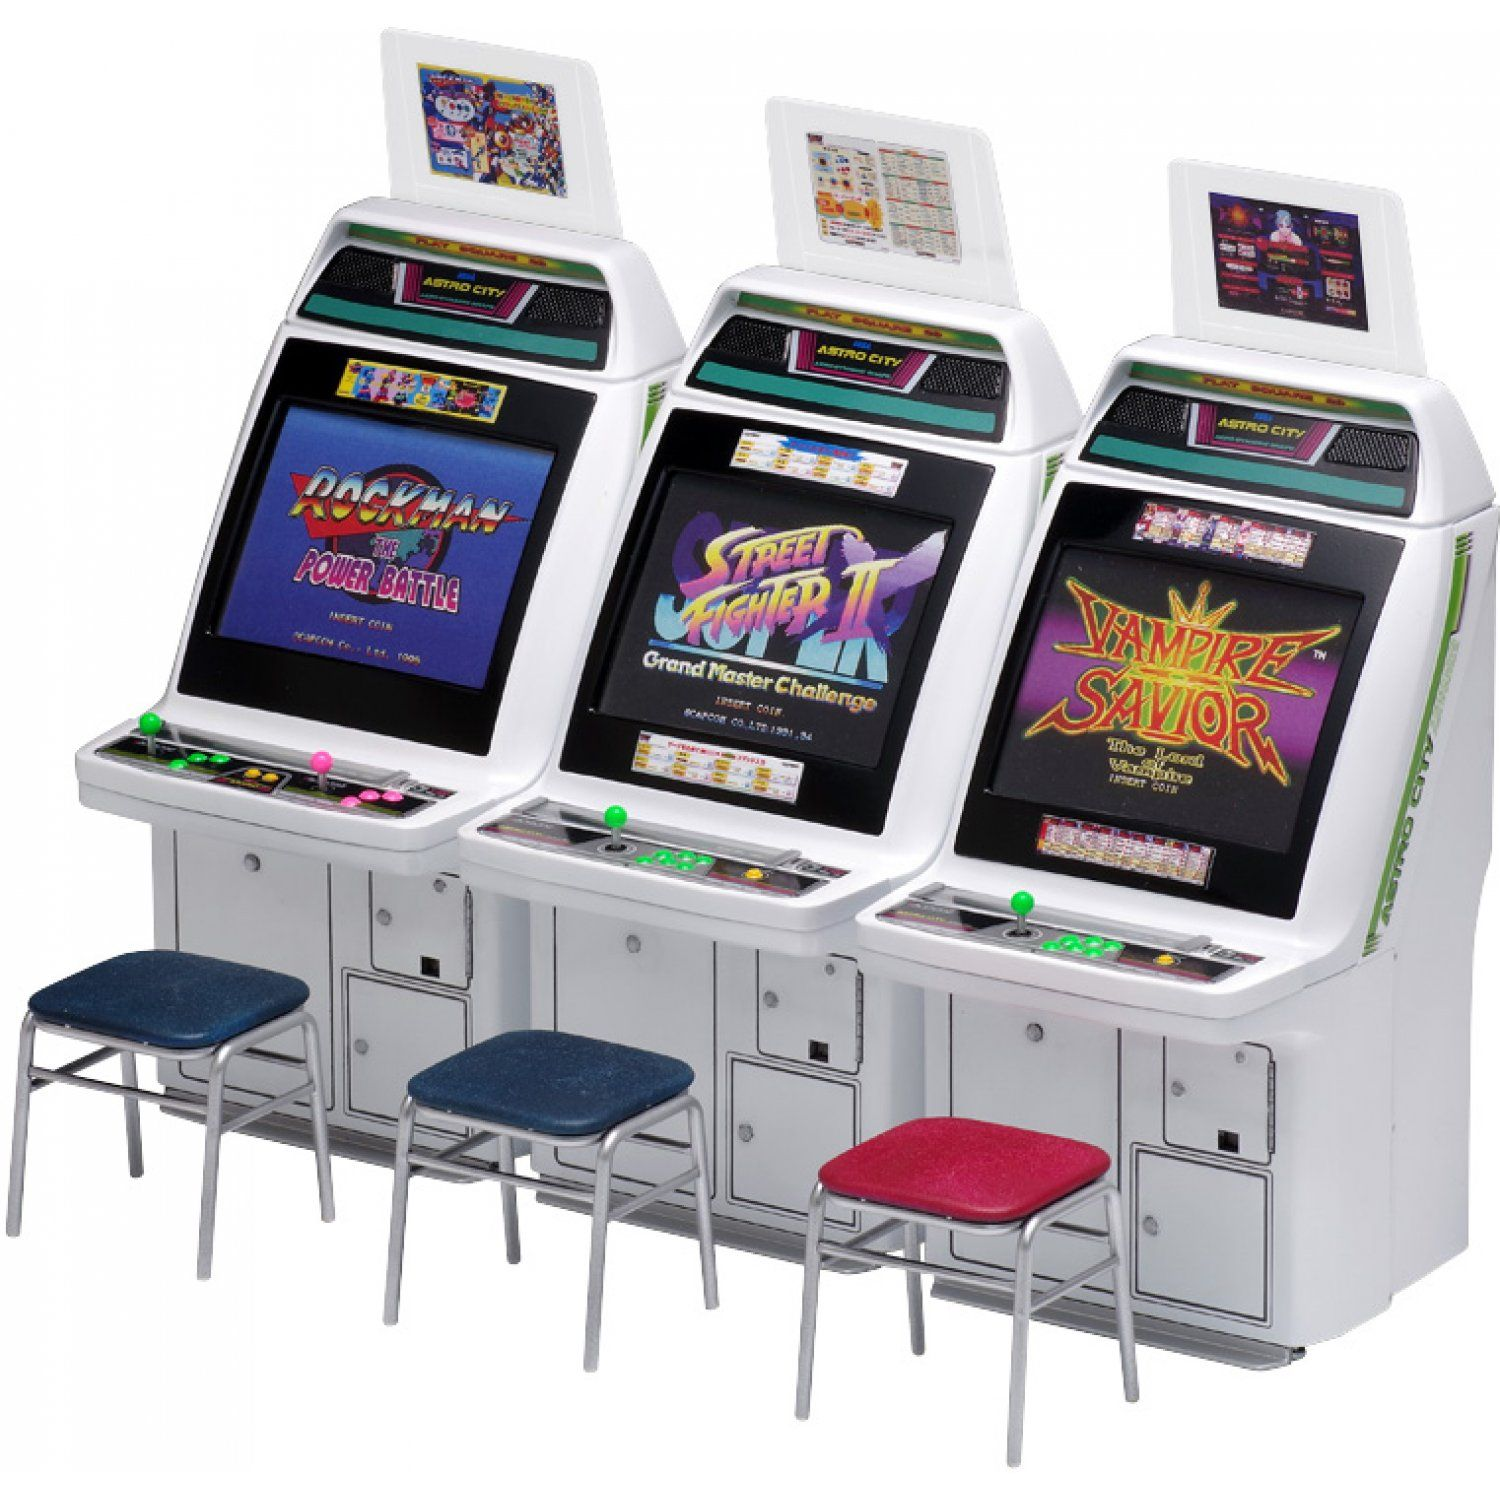 What are Redemption Arcade Game Machines?